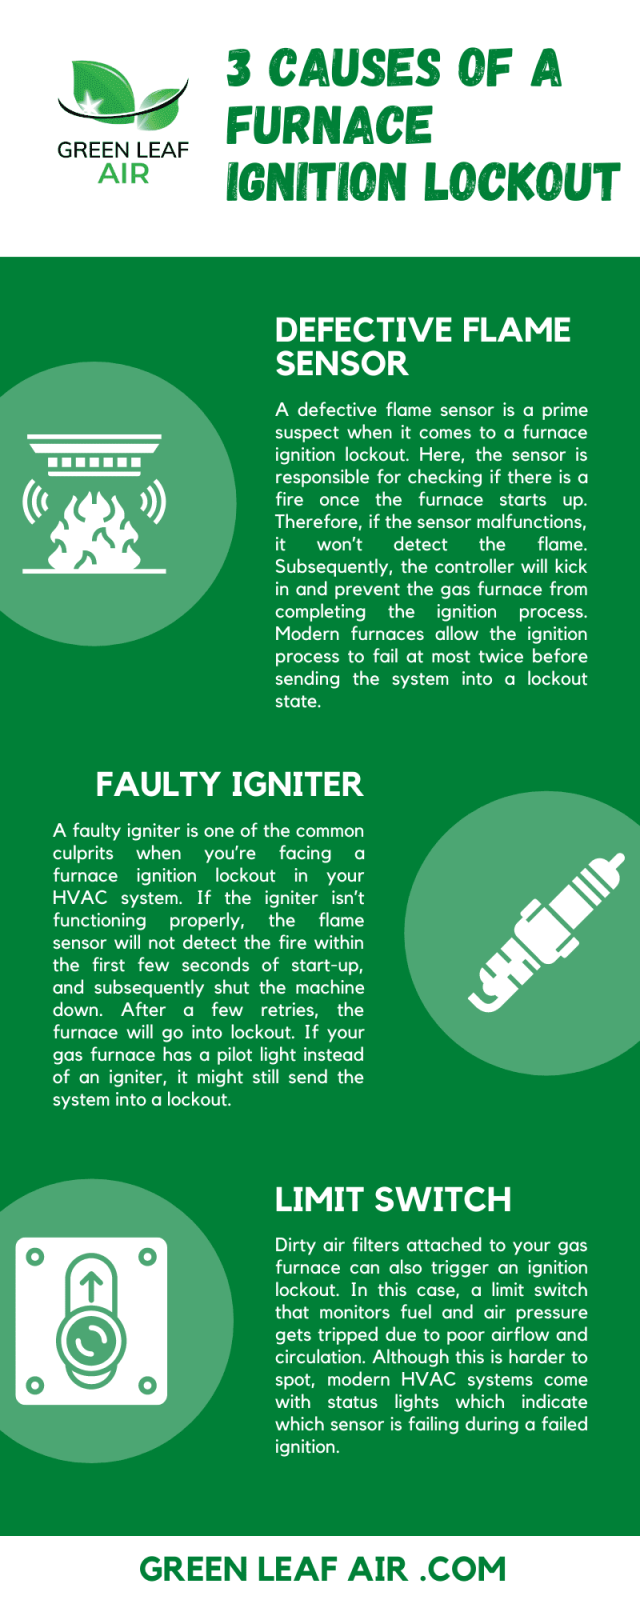 3 Causes of a Furnace Ignition Lockout